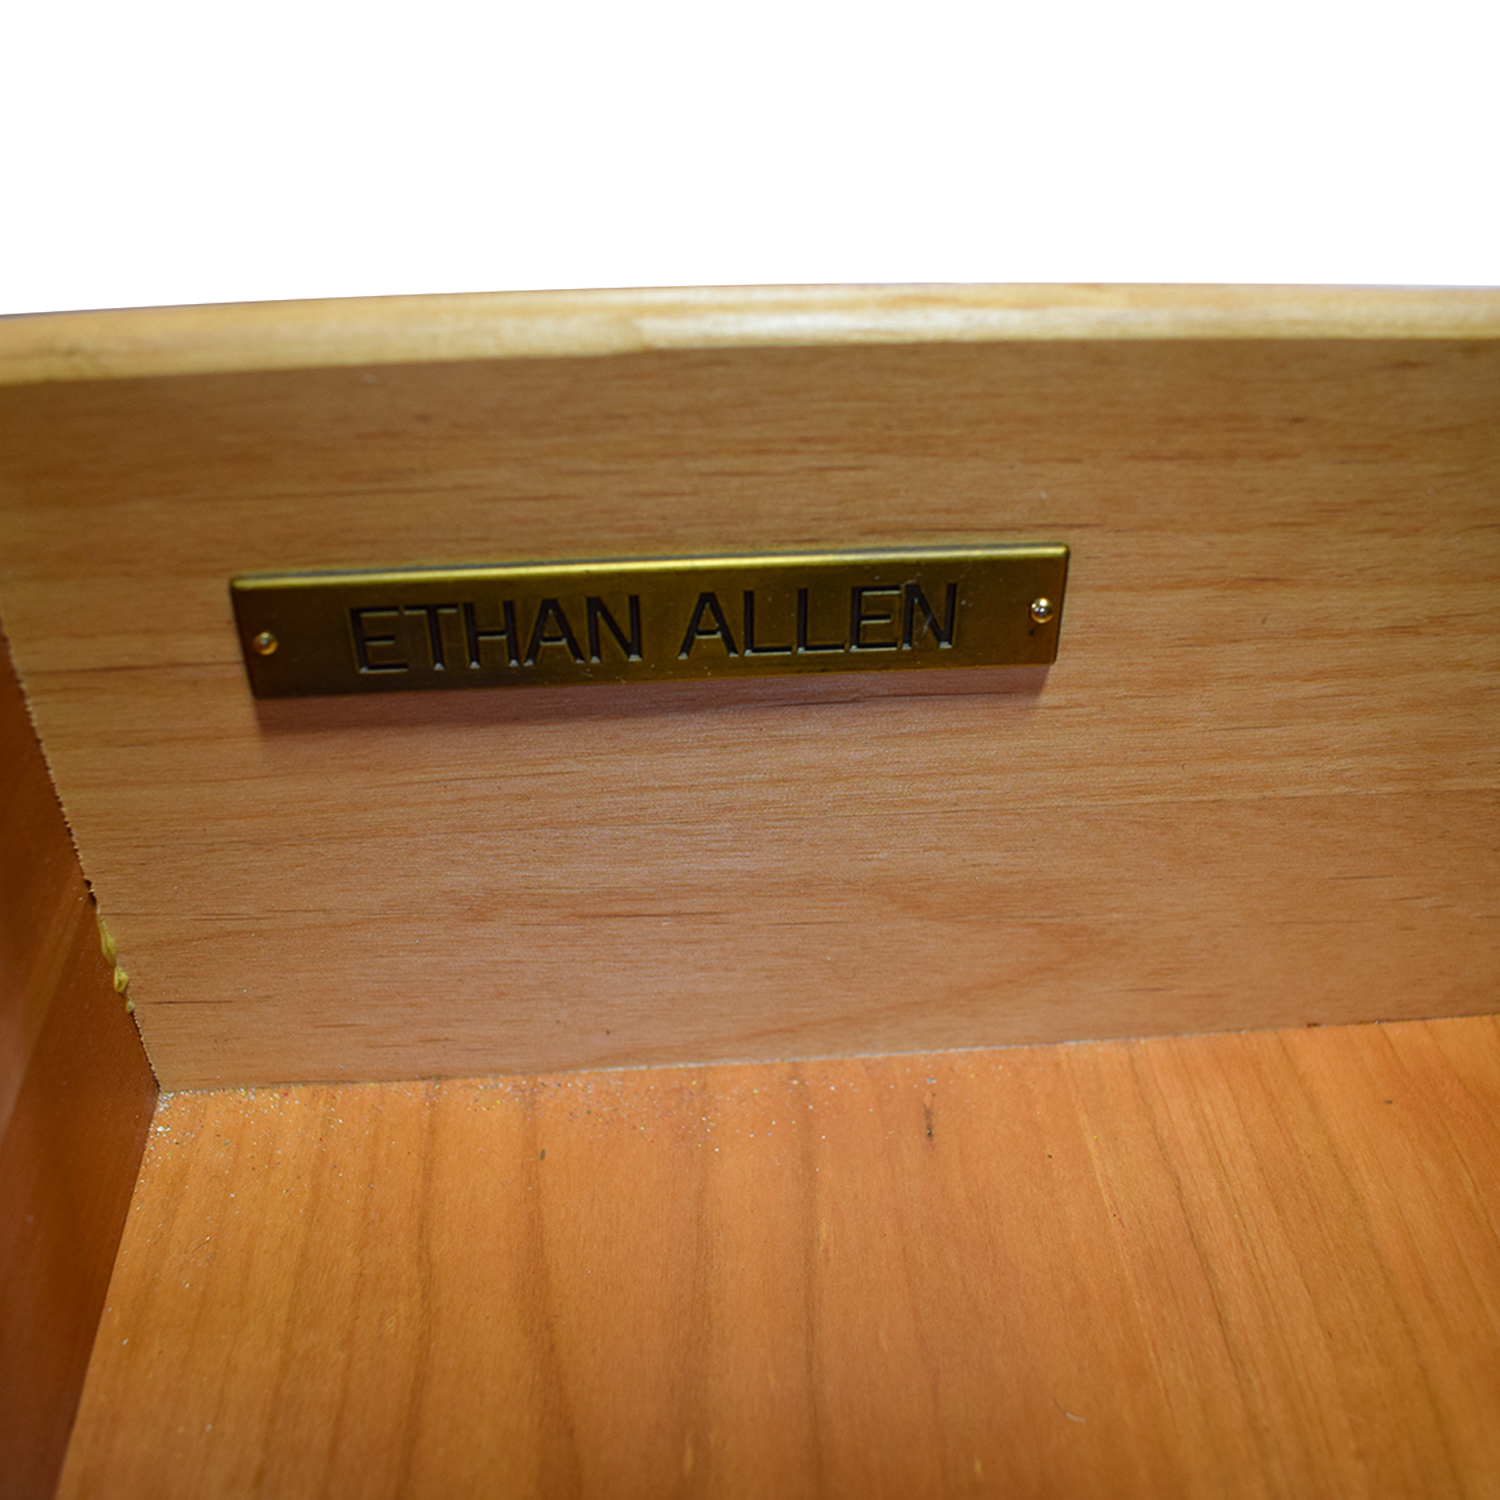 Ethan Allen Ethan Allen Wood Media Center with Drawers and Shelves on sale